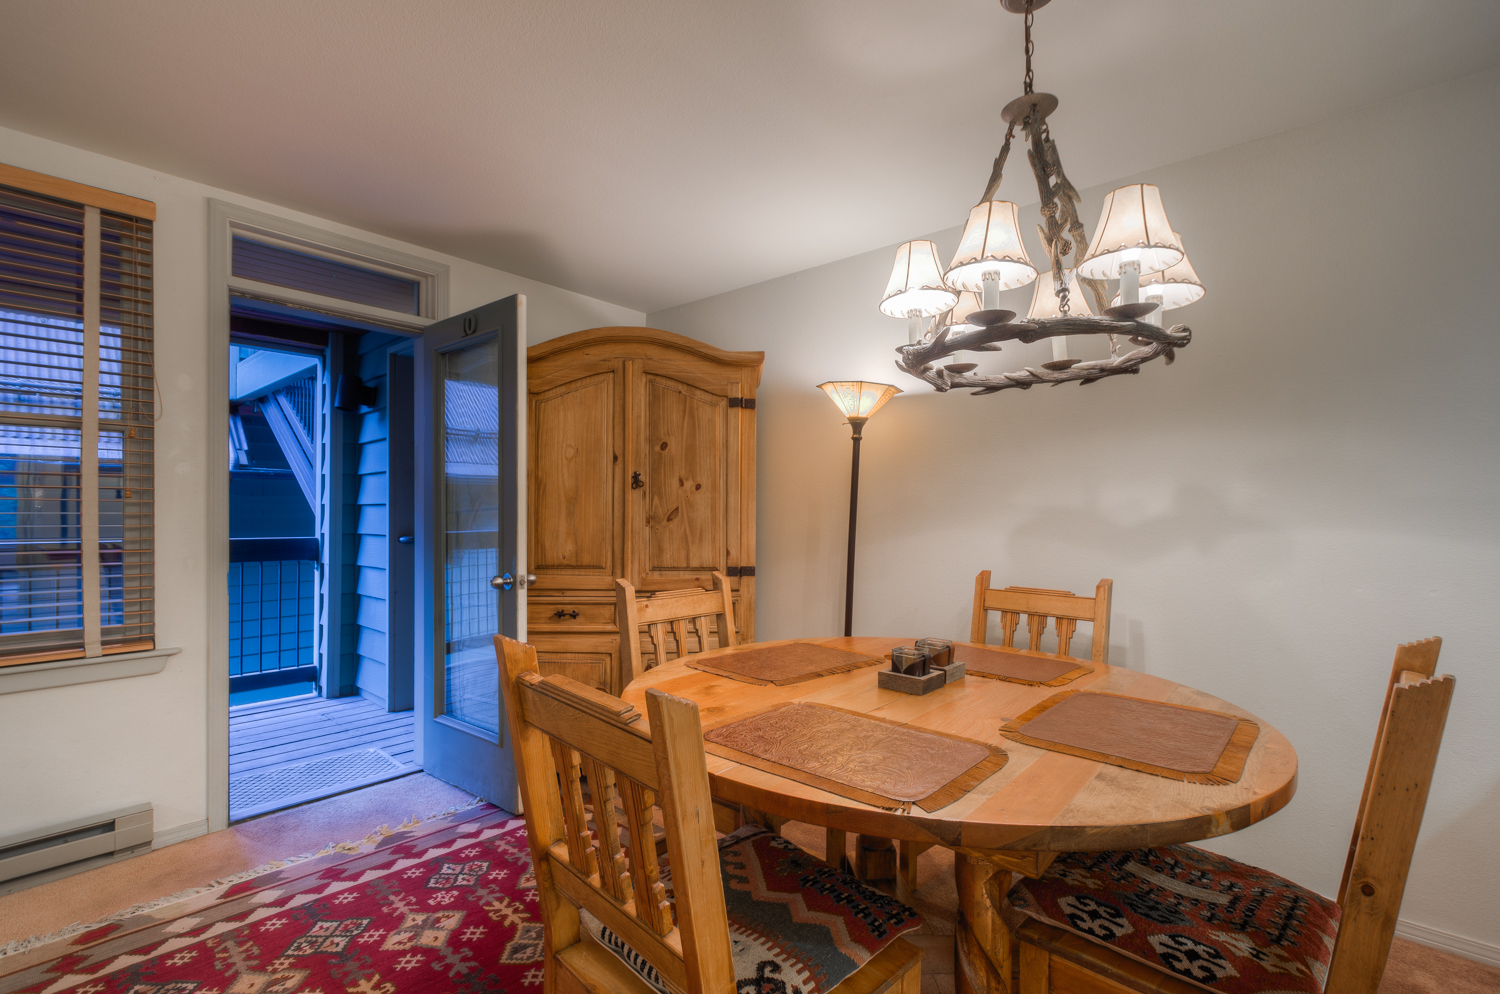 Dining Area with Access to the Balcony, Dining Table, Chairs, and Armoire